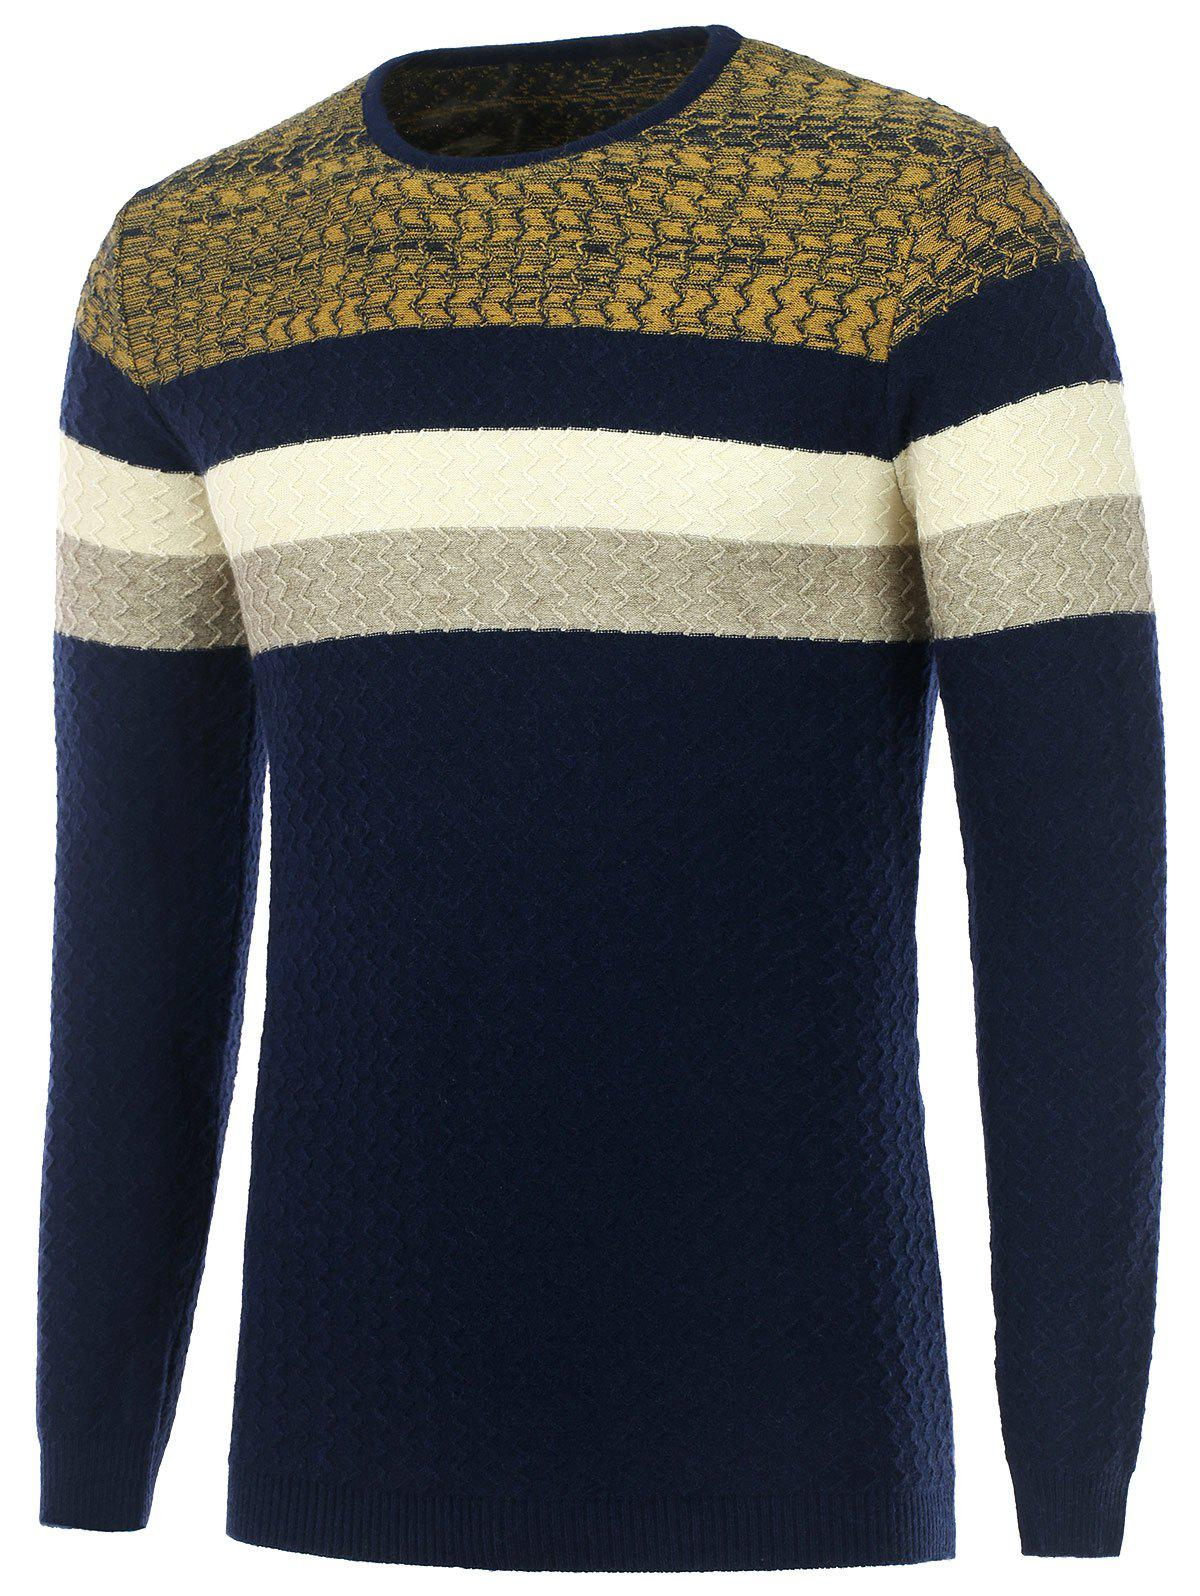 Wavy Stripes Knitted Color Matching Sweater - CADETBLUE L